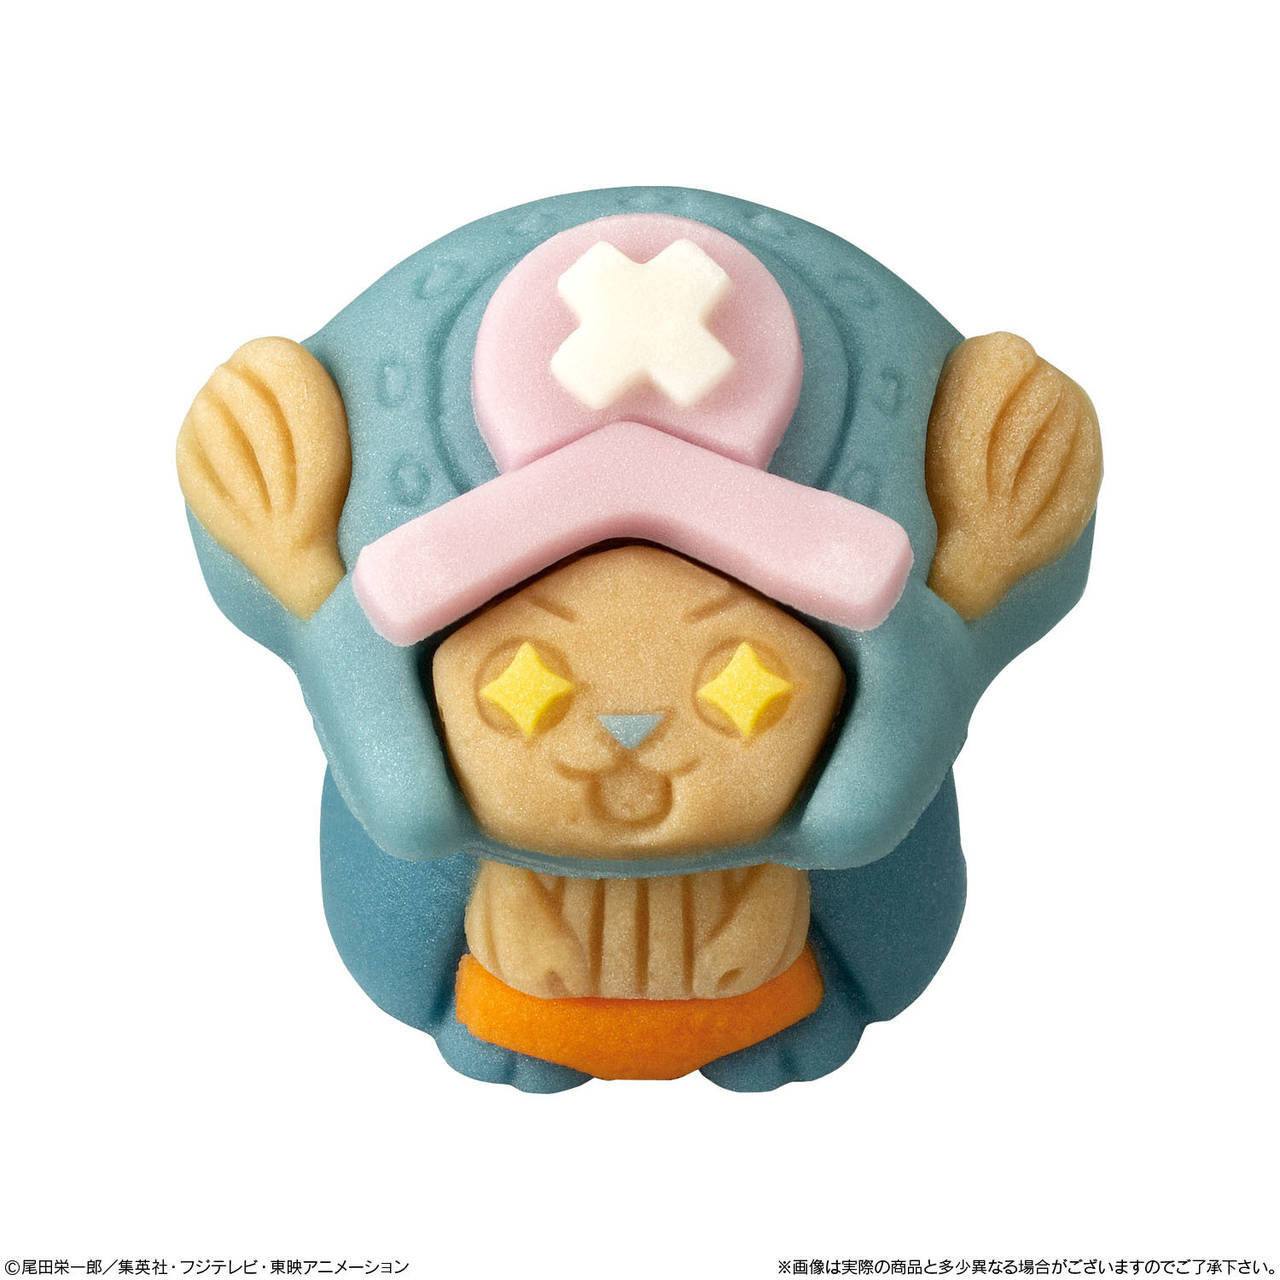 『ONE PIECE』チョッパーの和菓子2